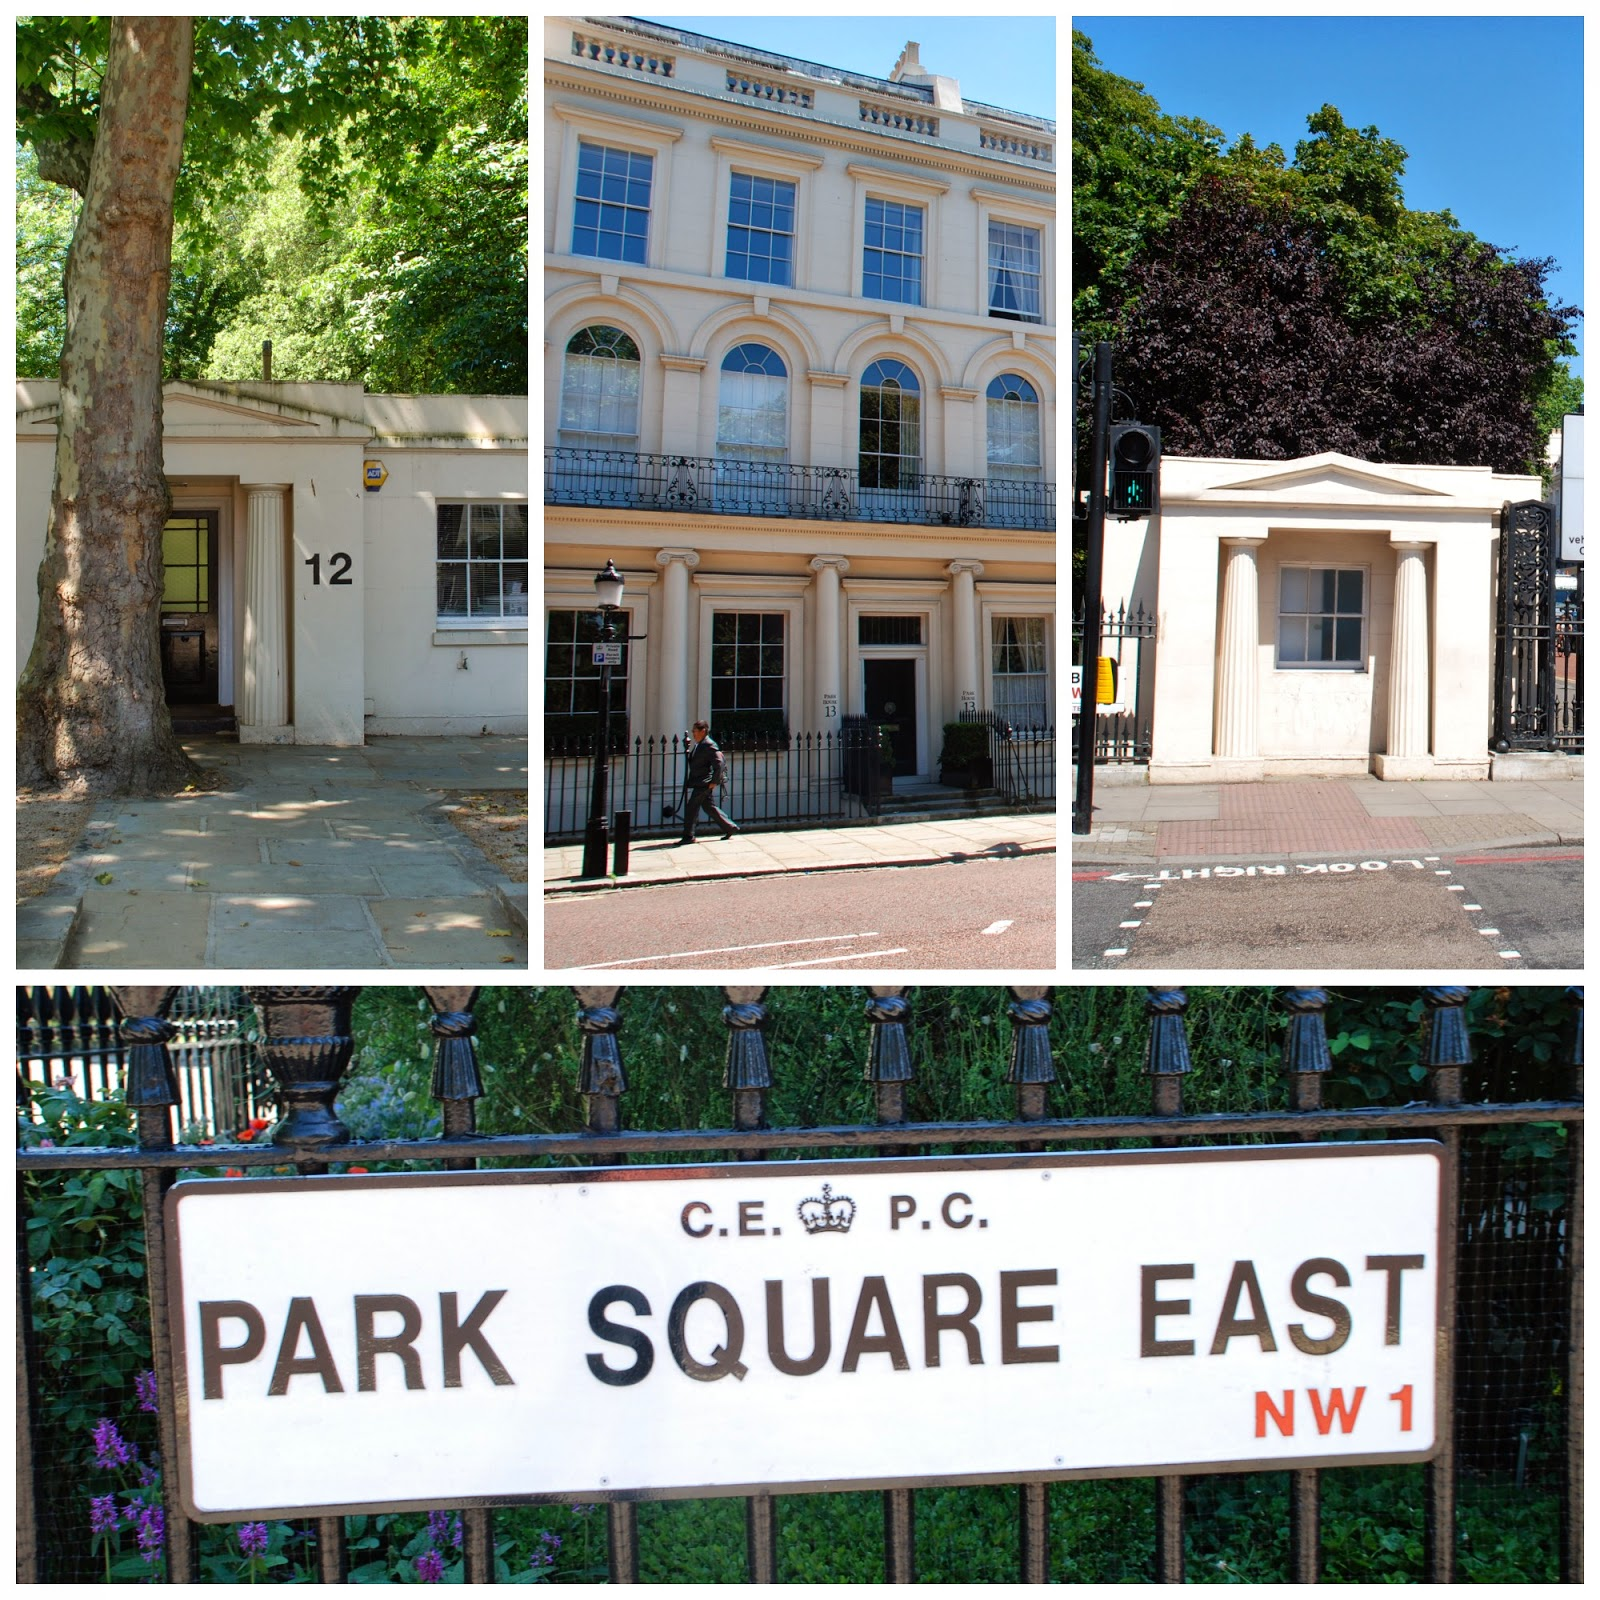 Park Square East, London